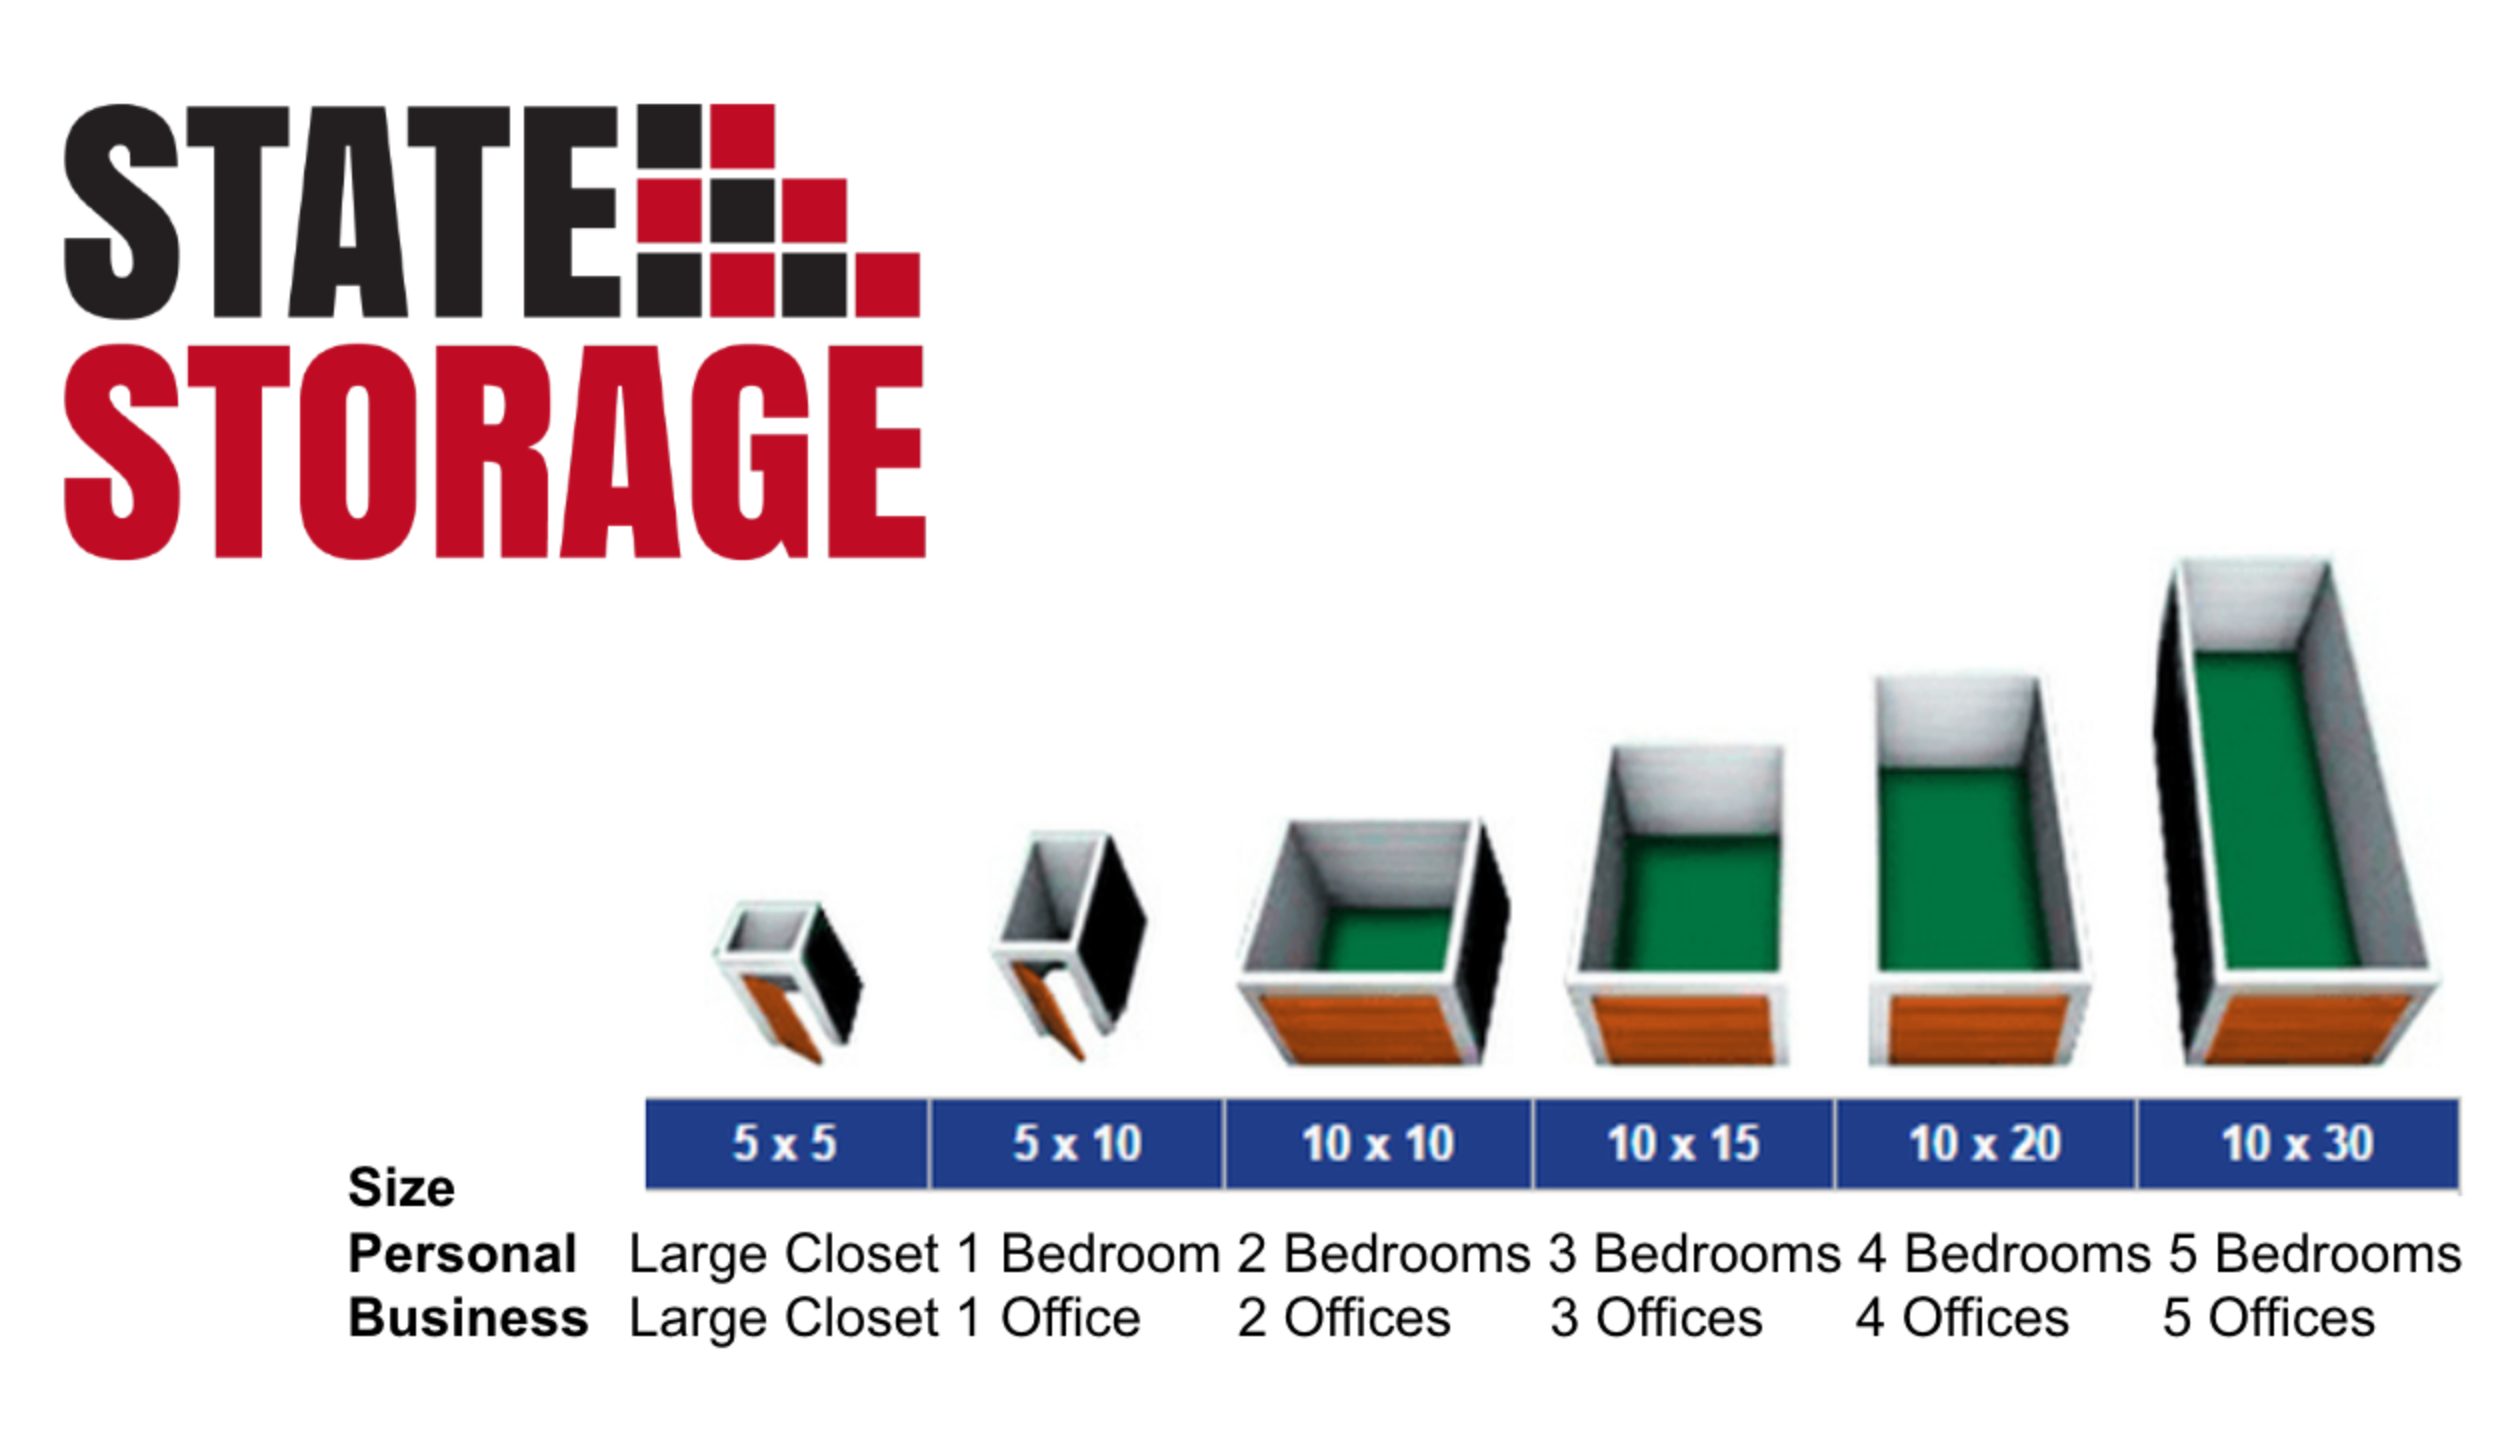 Size guide for storage unit. Shows recommended sizes for 1 through 5 bedroom homes and offices